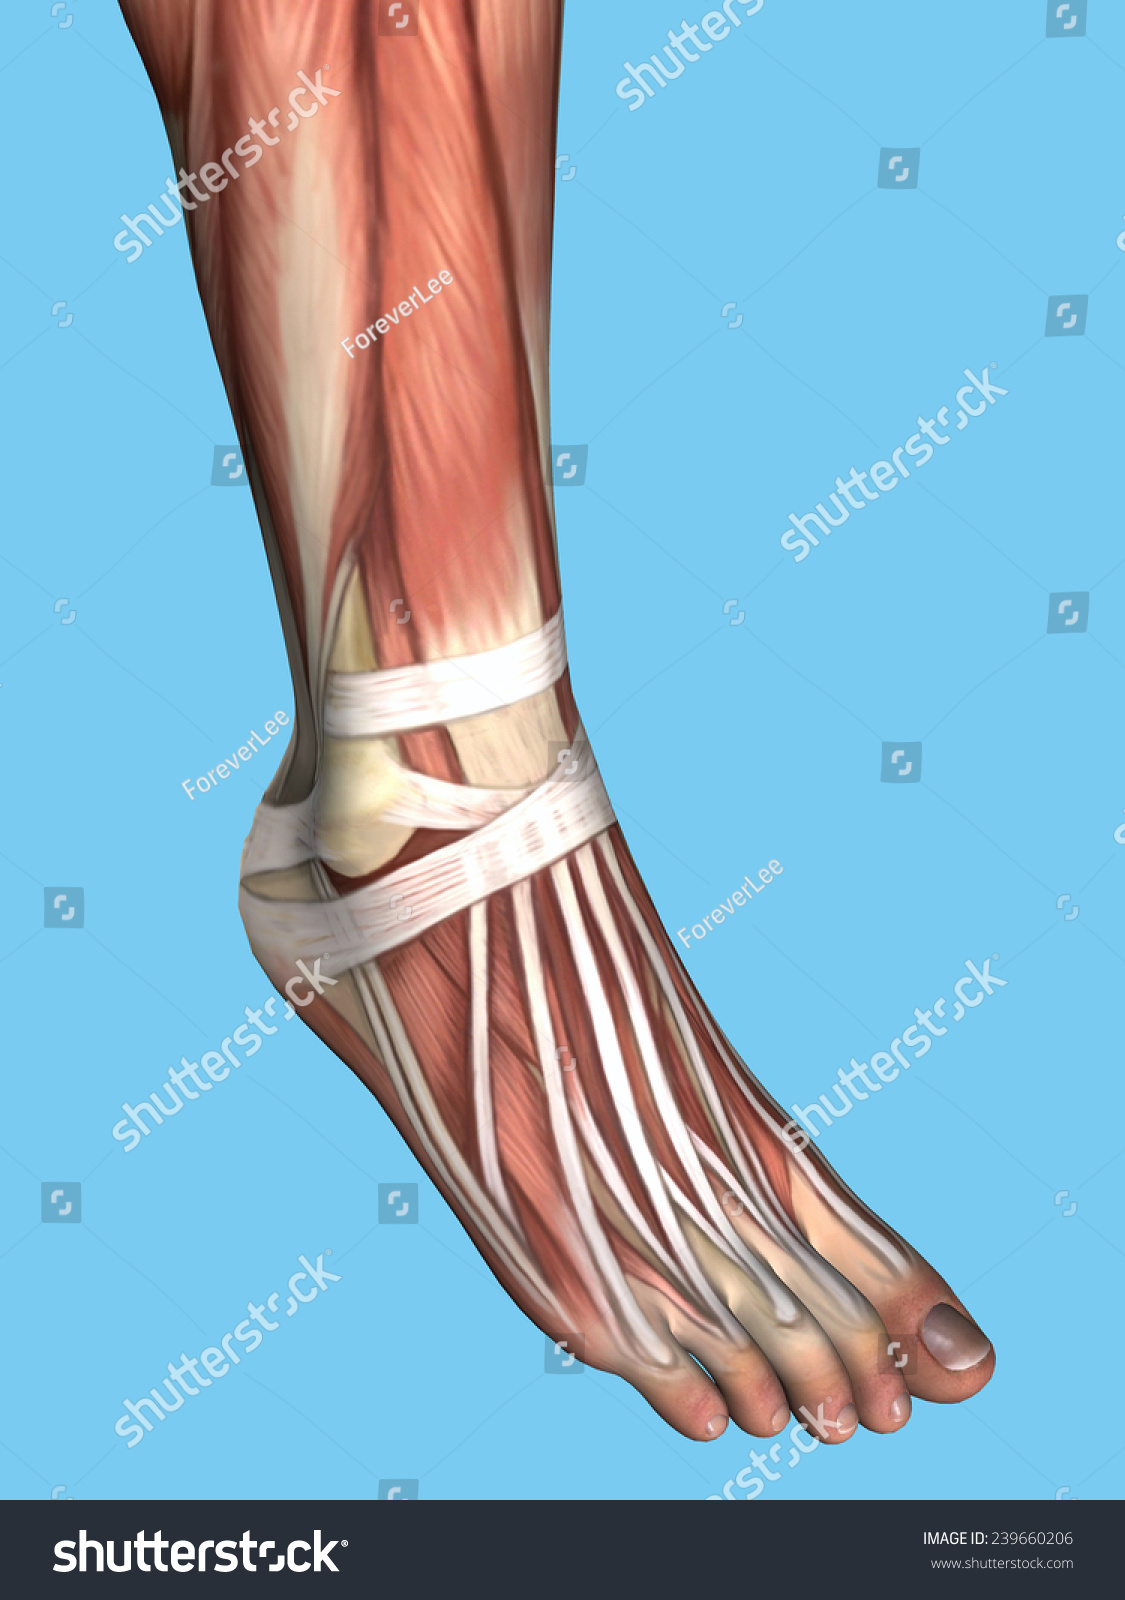 Anatomy Foot Featuring Extensor Digitorum Longus Stock Illustration ...